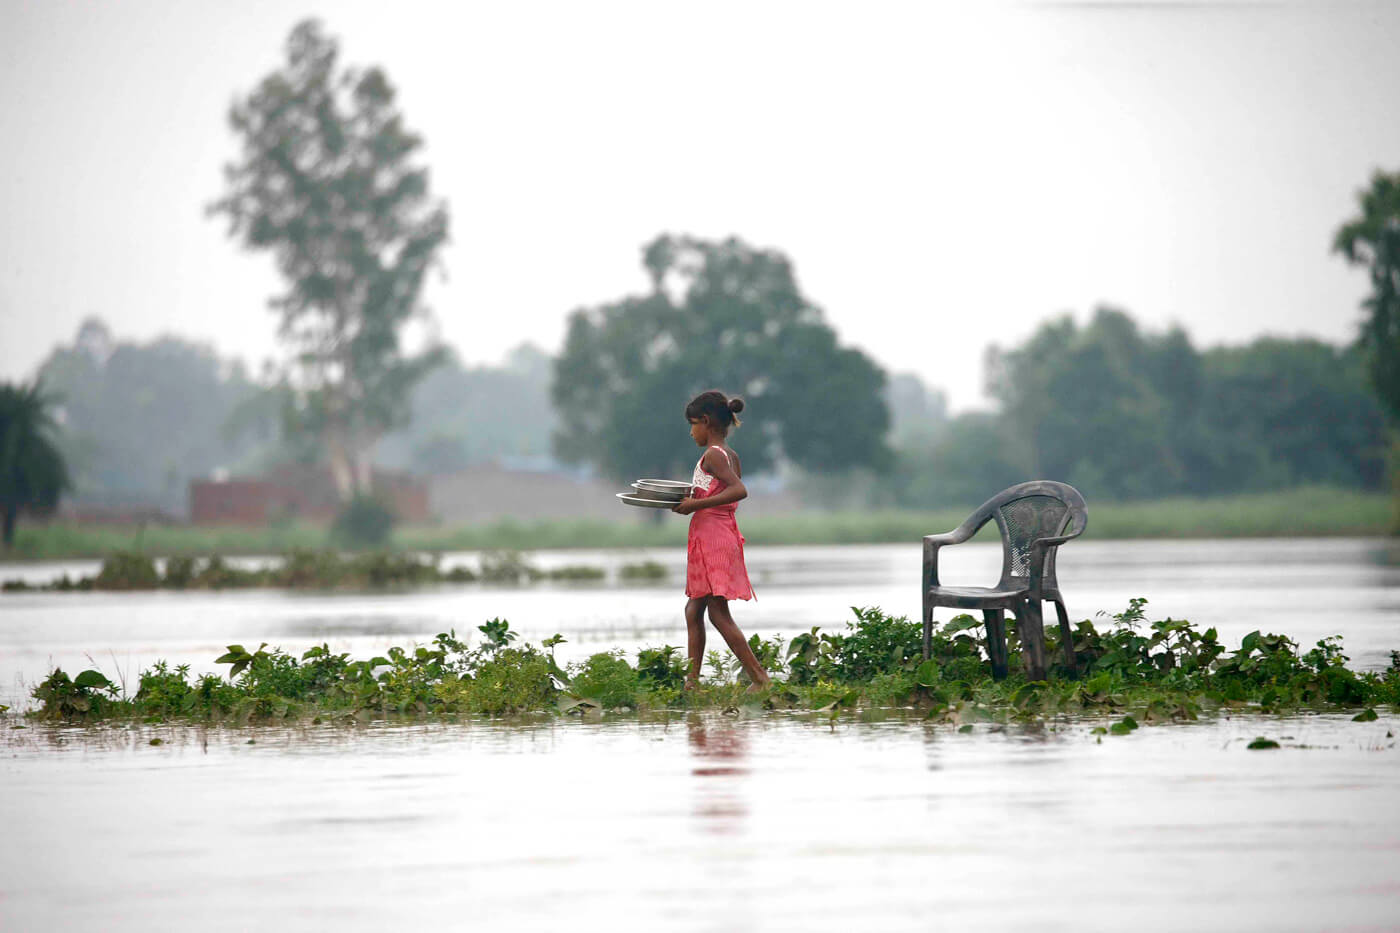 Nepal Tarai learns from past floods